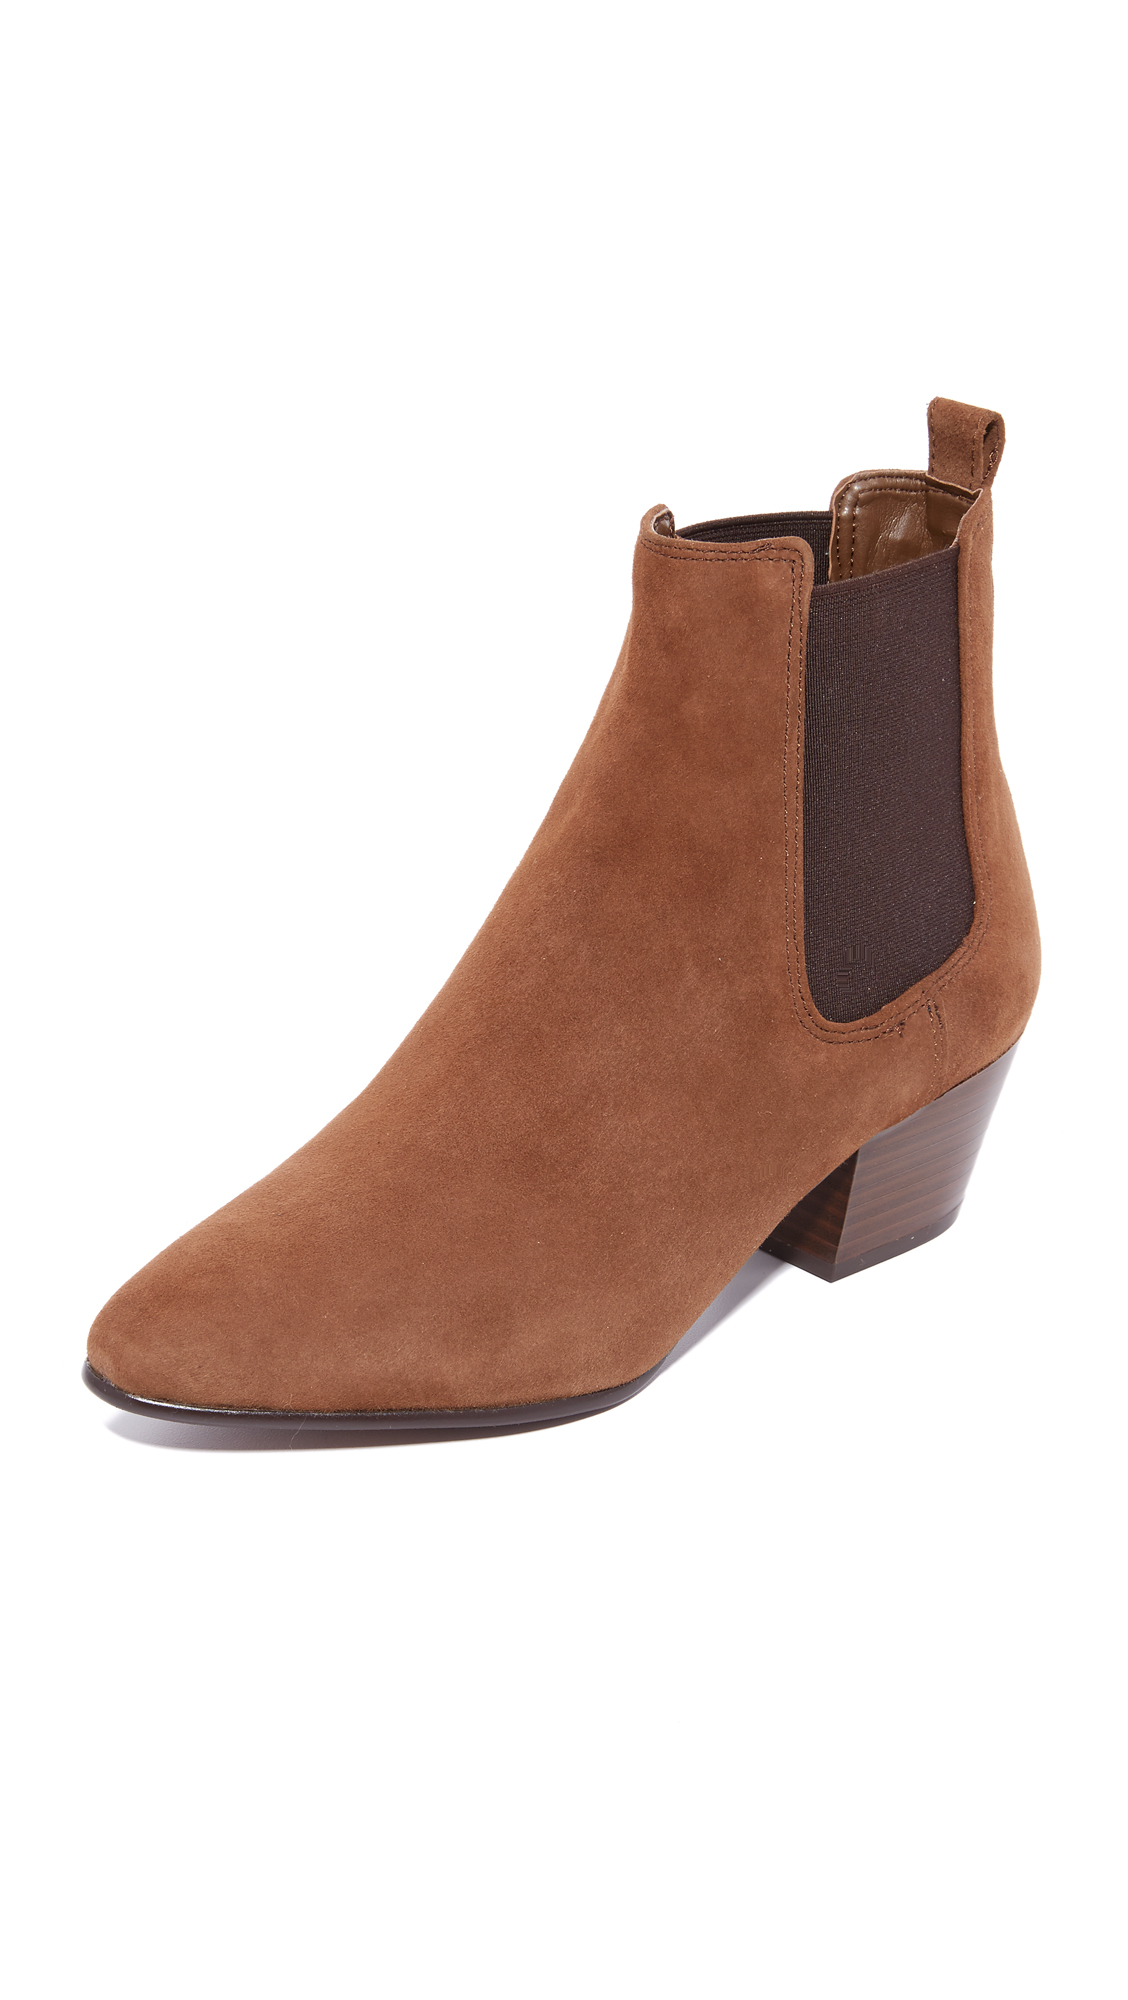 3b6a0d298 Lyst - Sam Edelman Reesa Booties in Brown